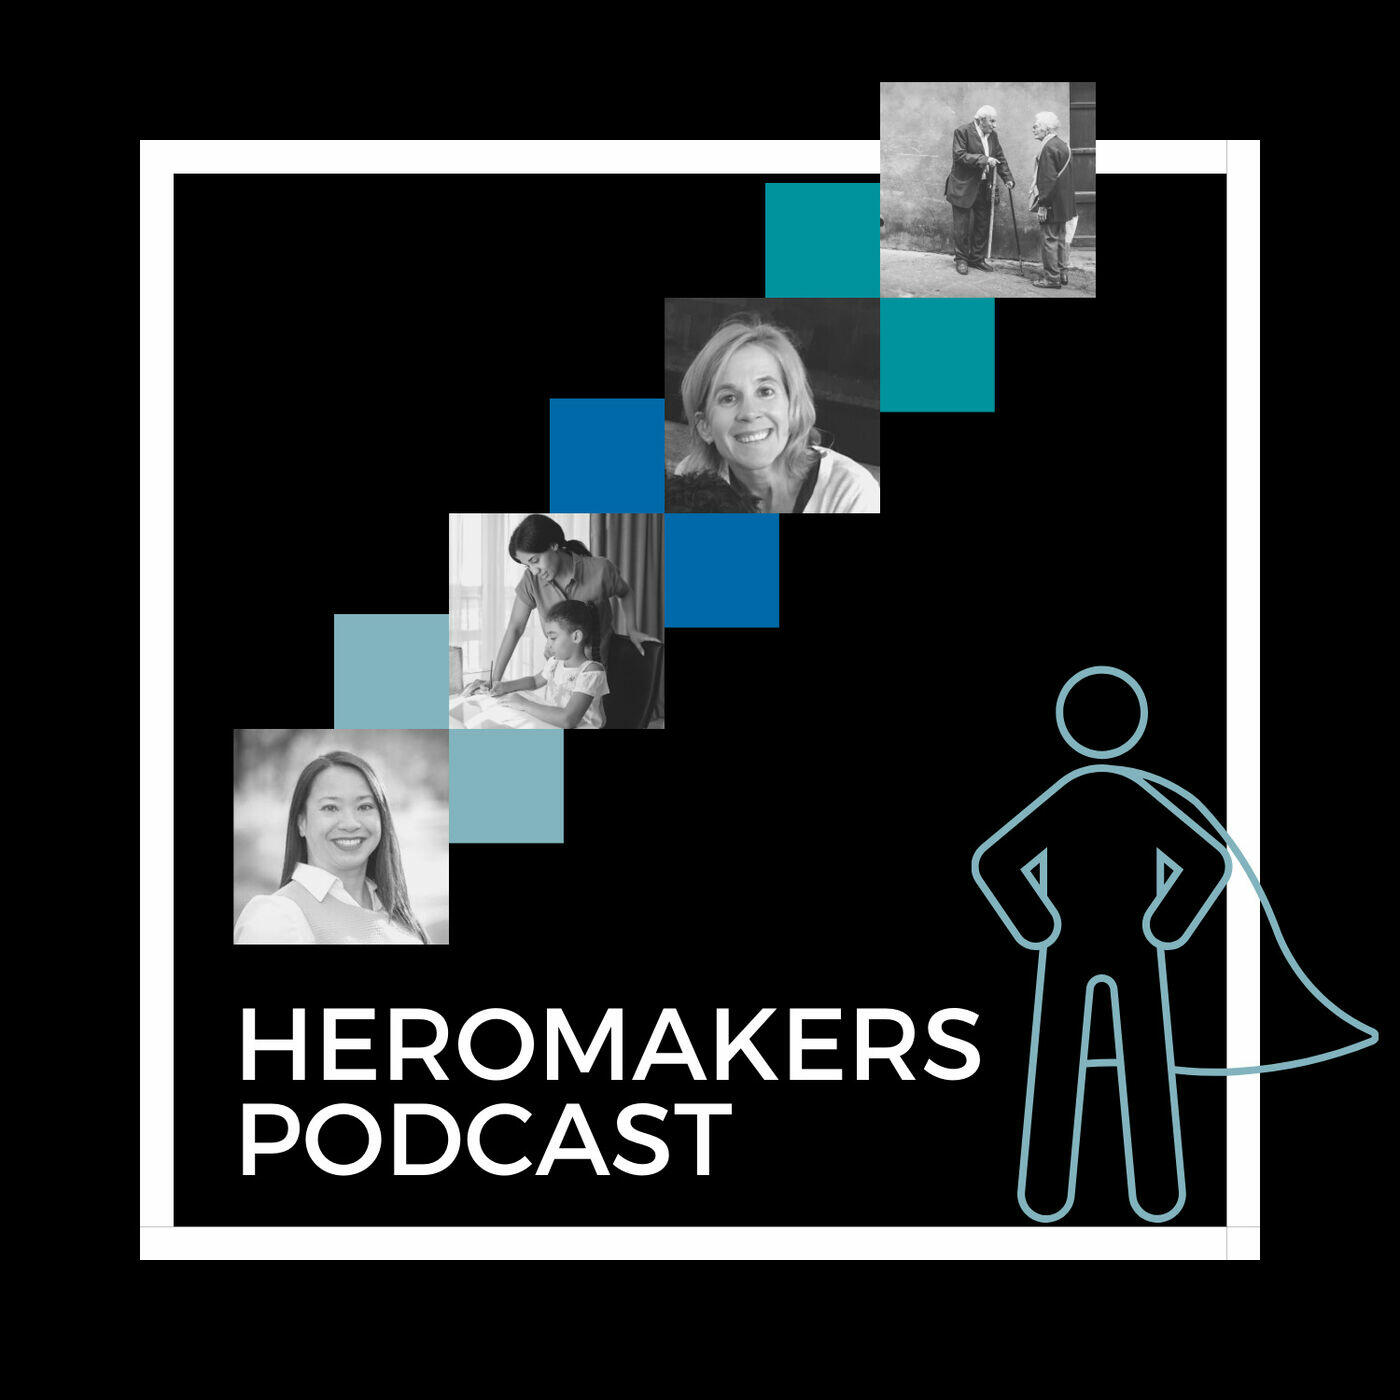 Heromakers Podcast